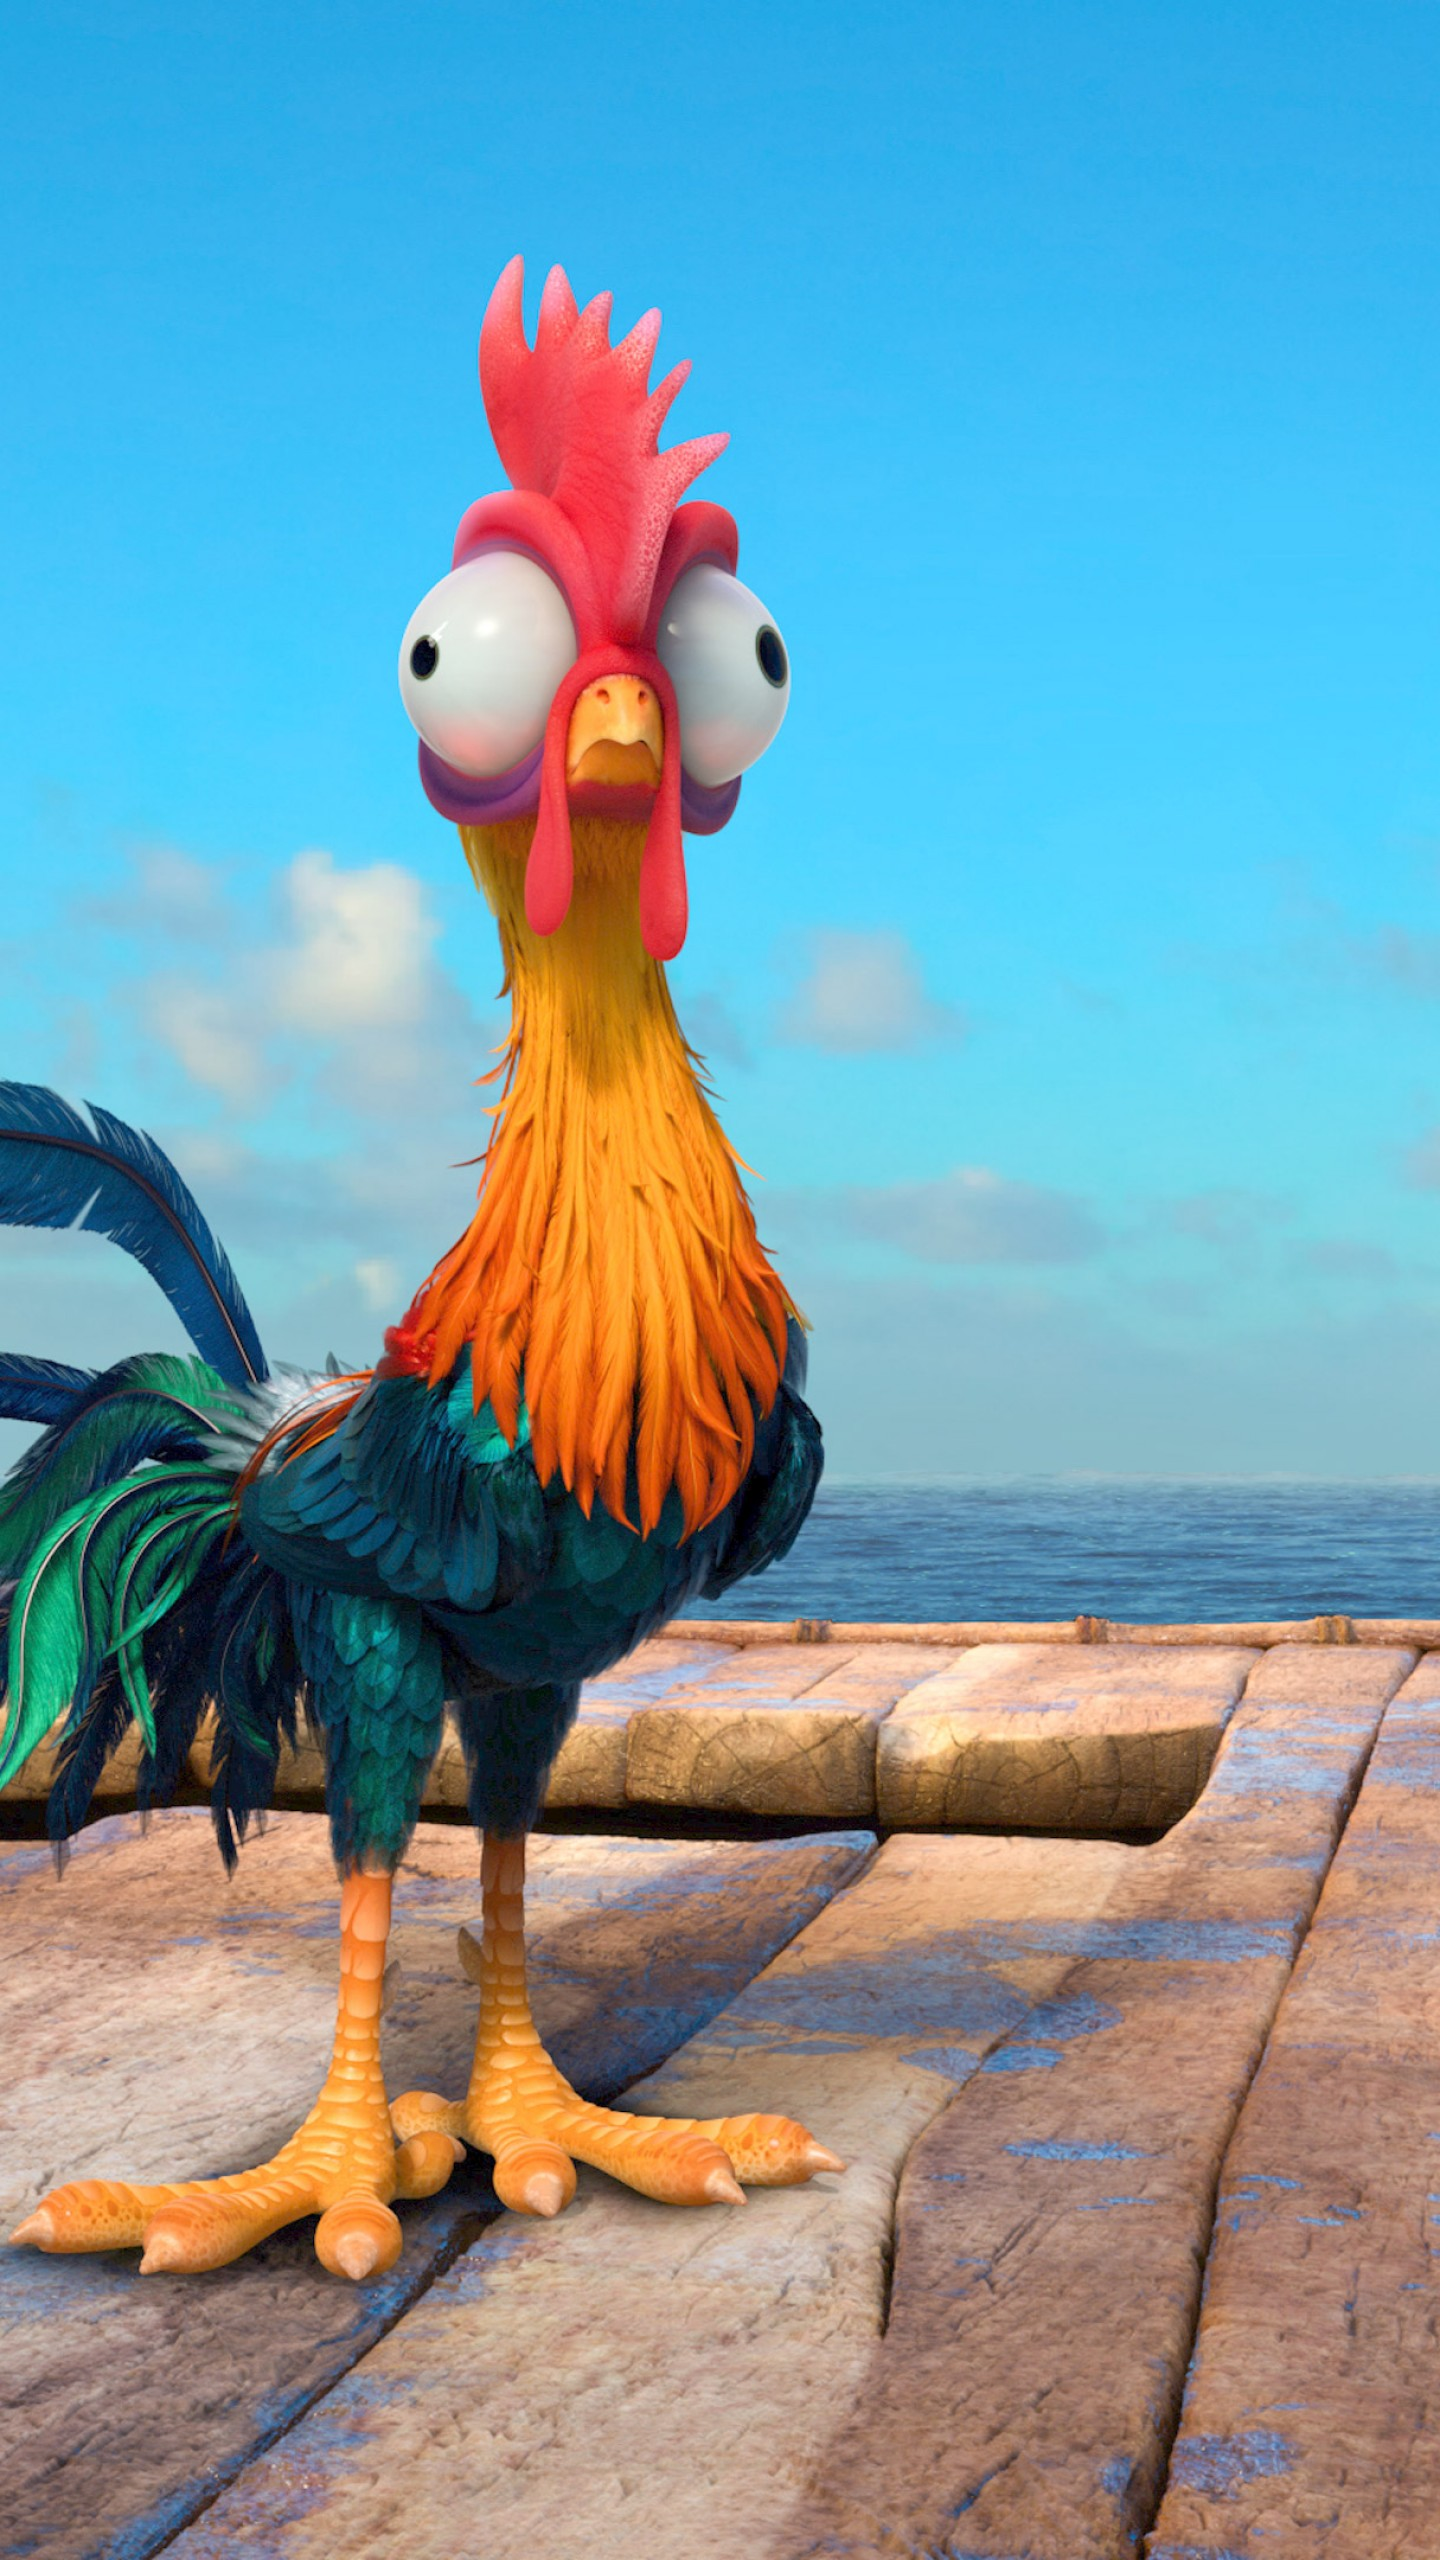 Life Quotes Hd Wallpapers Download Wallpaper Moana Chiken Heihei Best Animation Movies Of